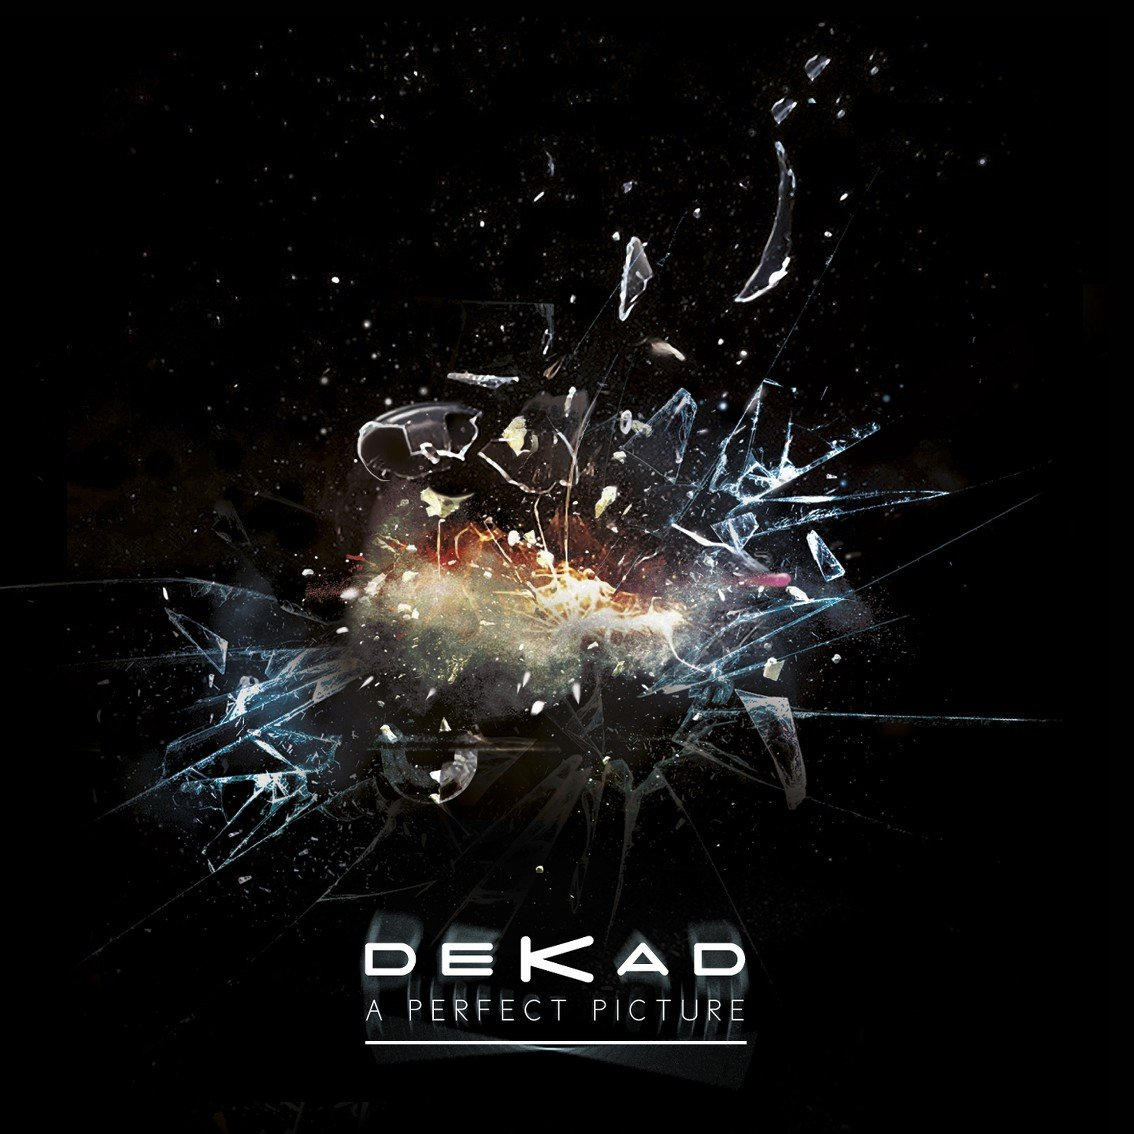 New Dekad album 'A Perfect Picture' out September 4 - get your orders in at a discounted price